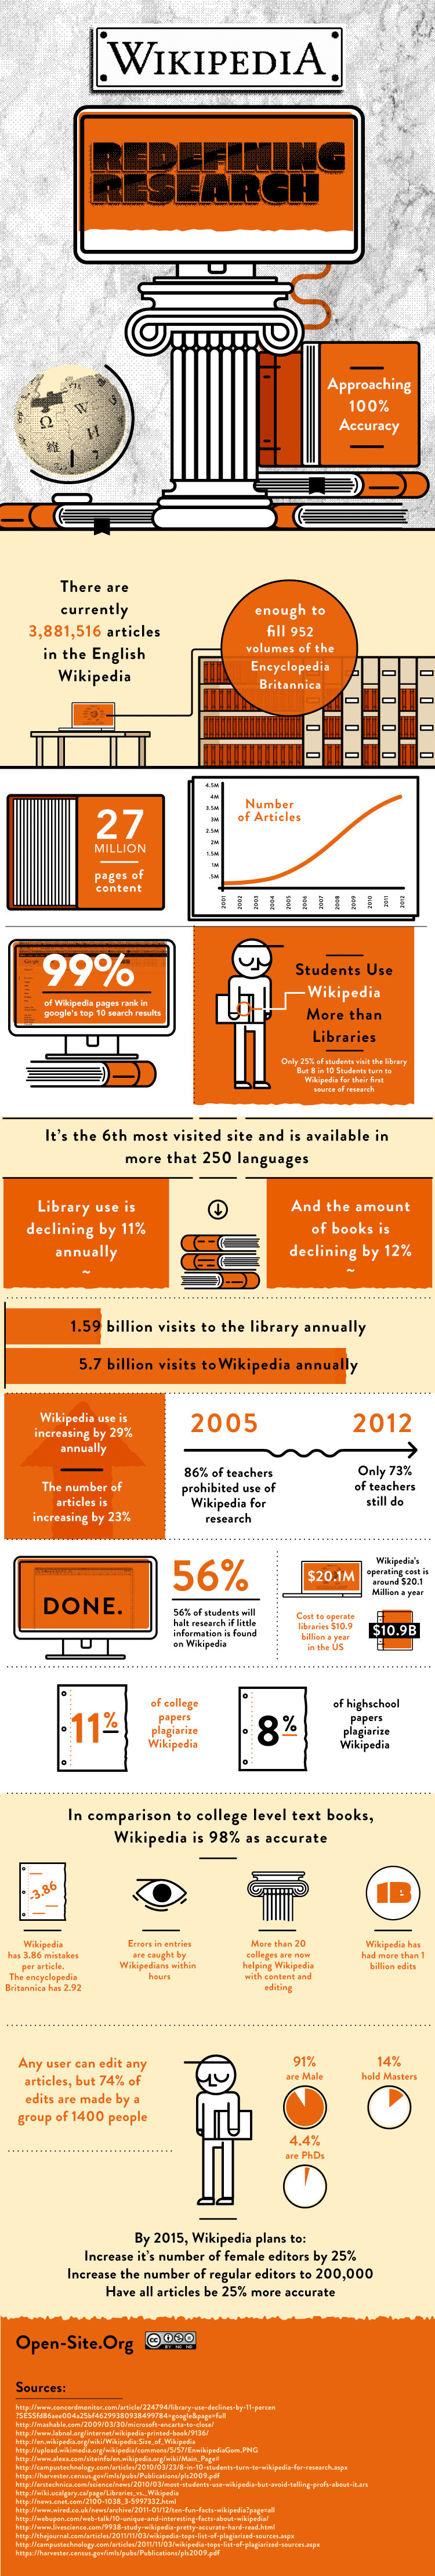 wikipedia Research and an infographic about research